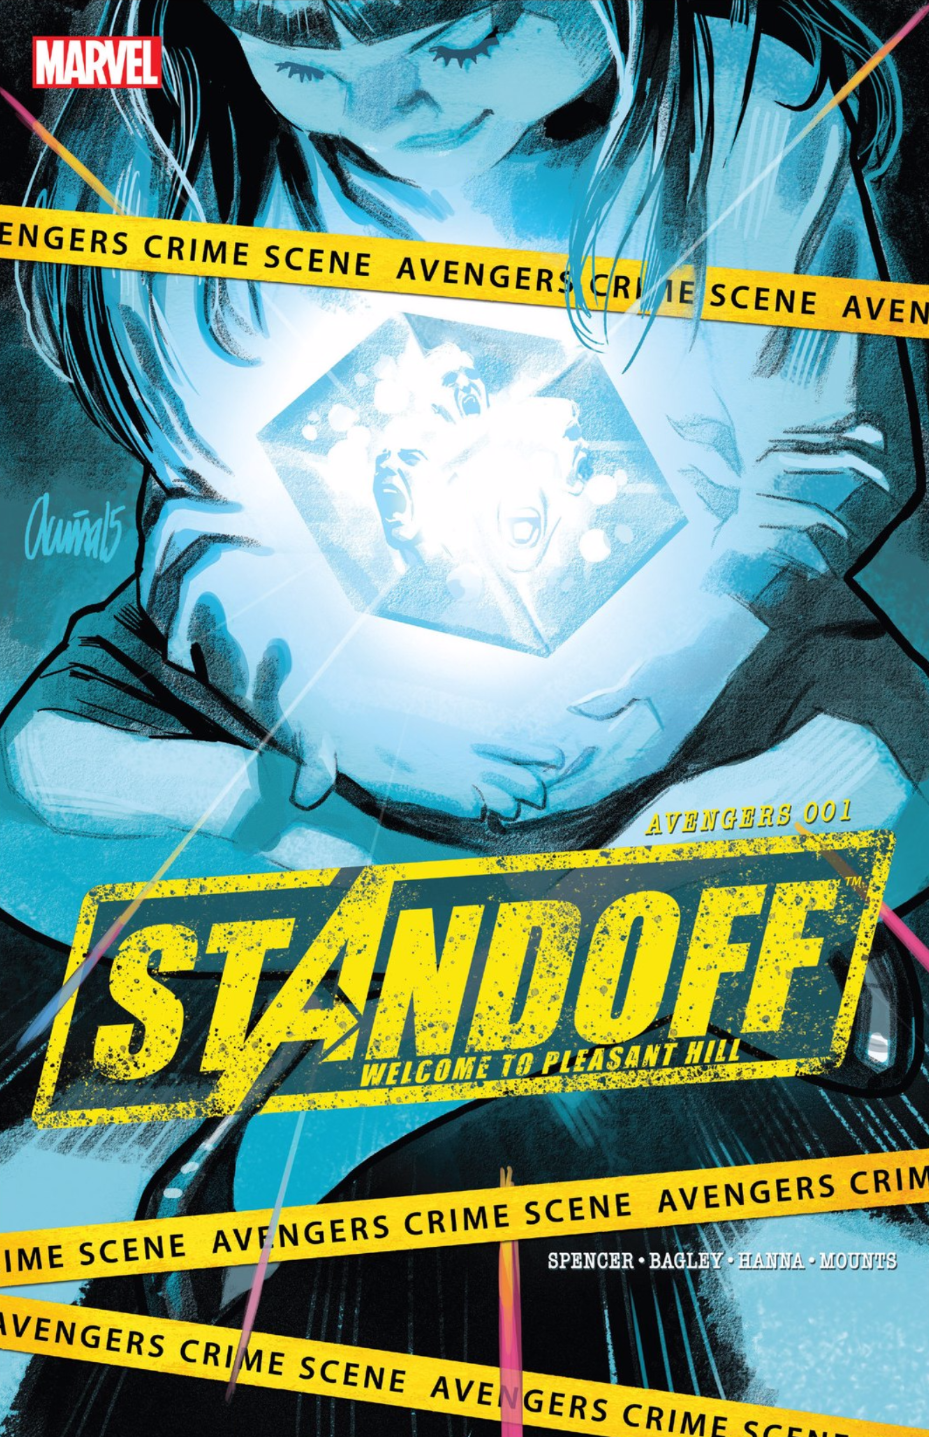 Marvel Comics Just Changed S.H.I.E.L.D in a Big, Scary Way